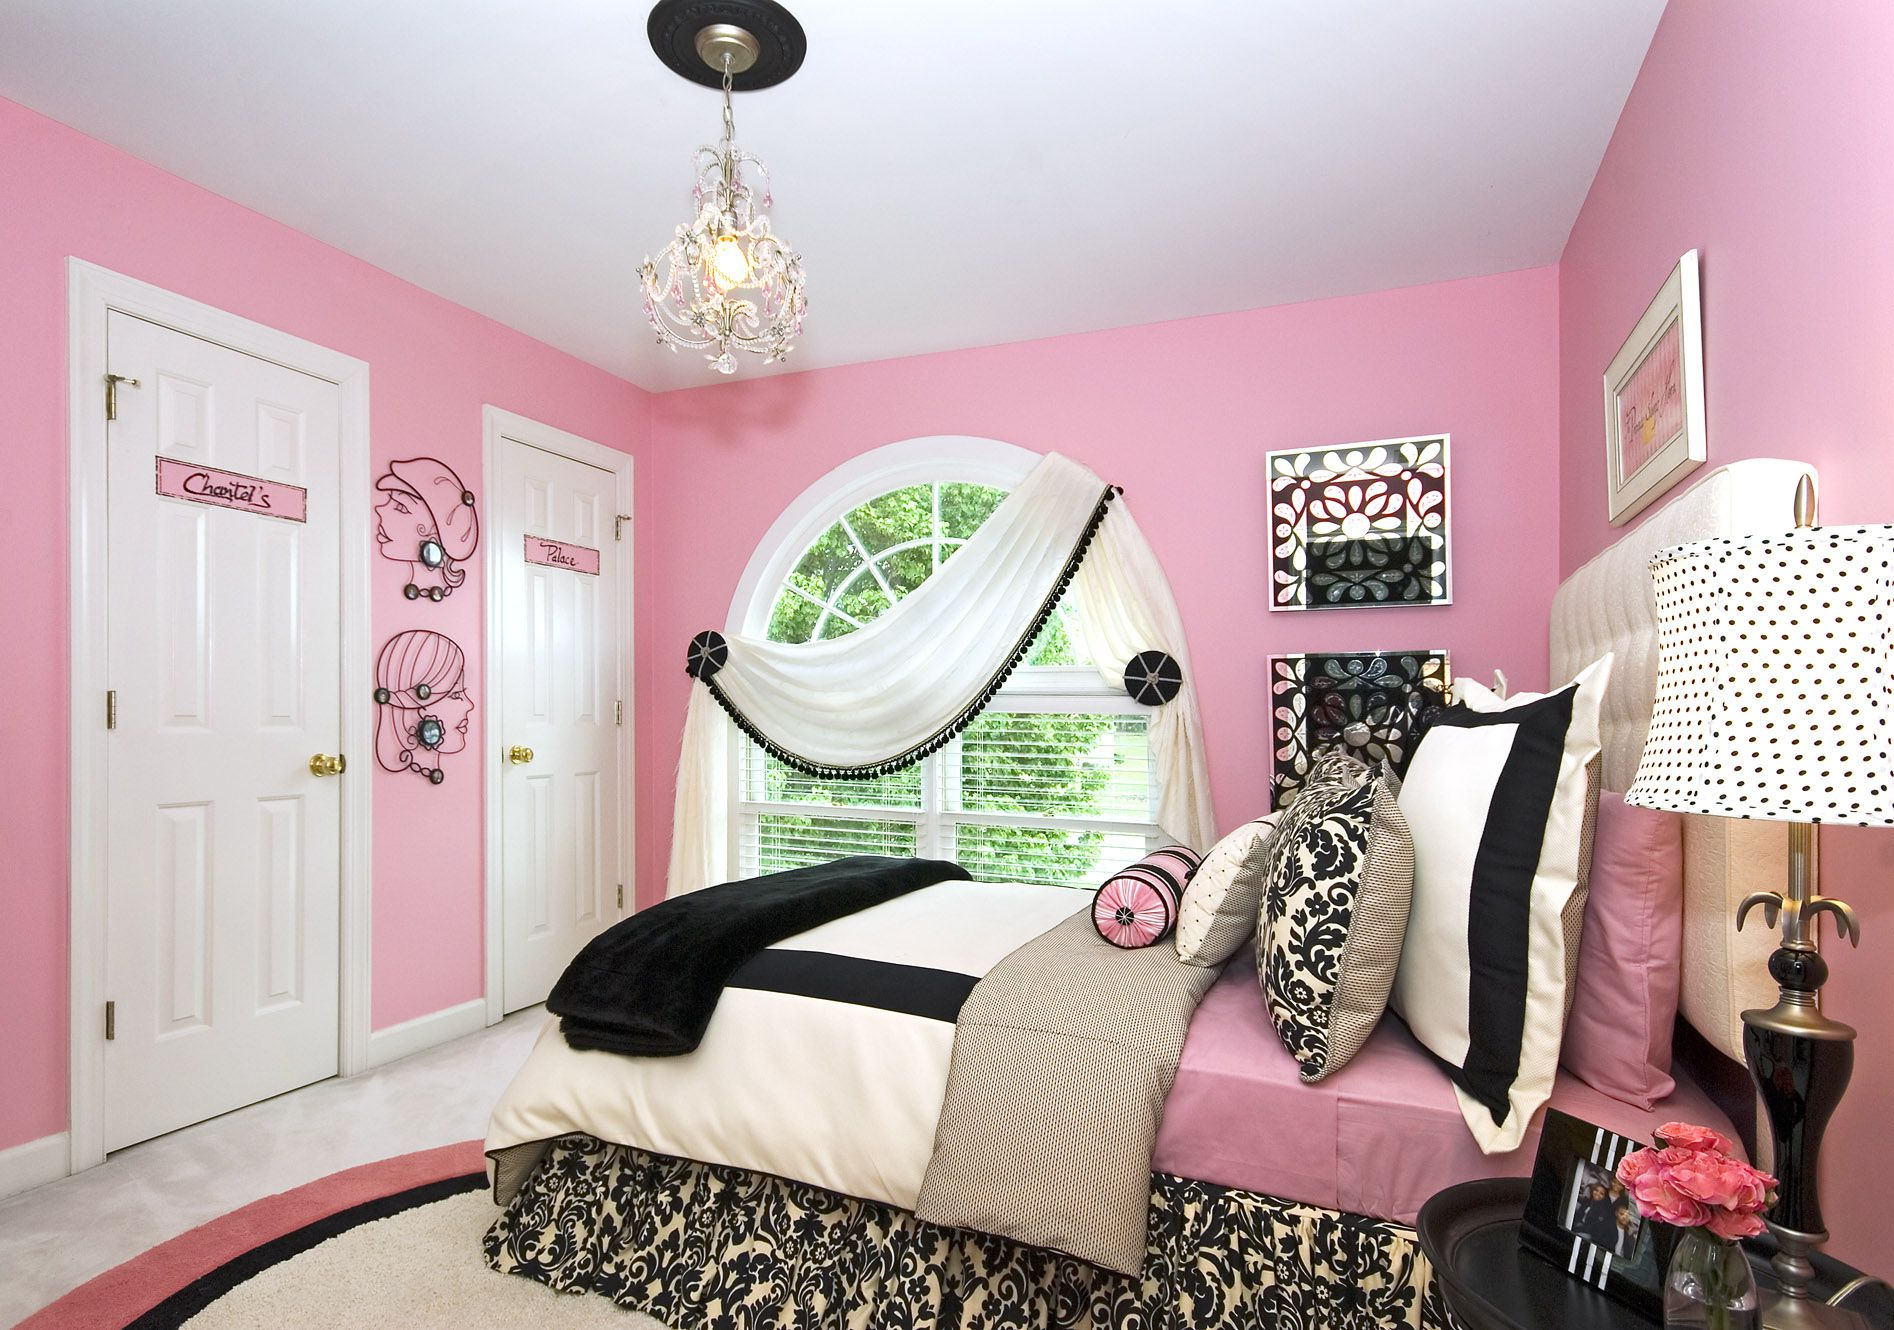 Place Gorgeous Bed inside Cute Girls Bedroom Decor with Black Nightstands and Pink Painted Wall & Simple Design Tips for Girlsu0027 Bedrooms - MidCityEast